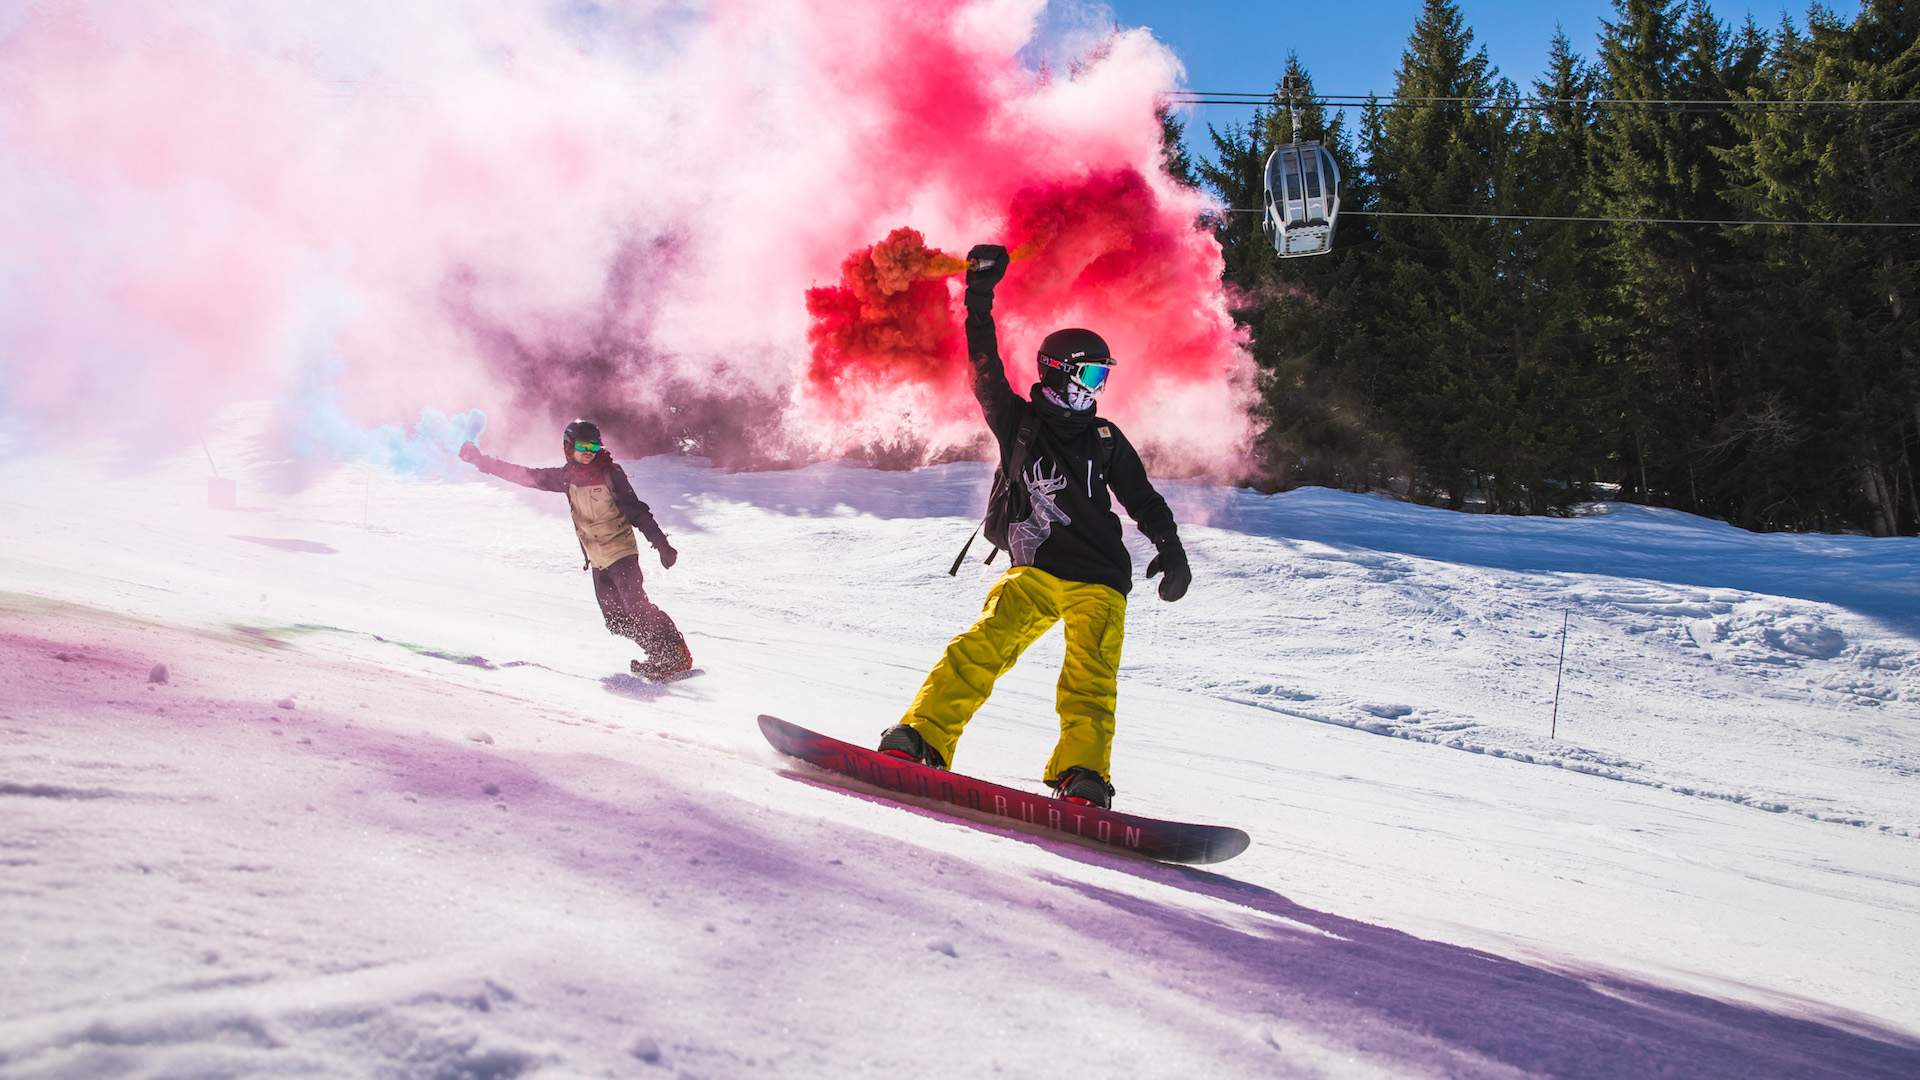 European Winter Festival Snowboxx Is Coming to New Zealand